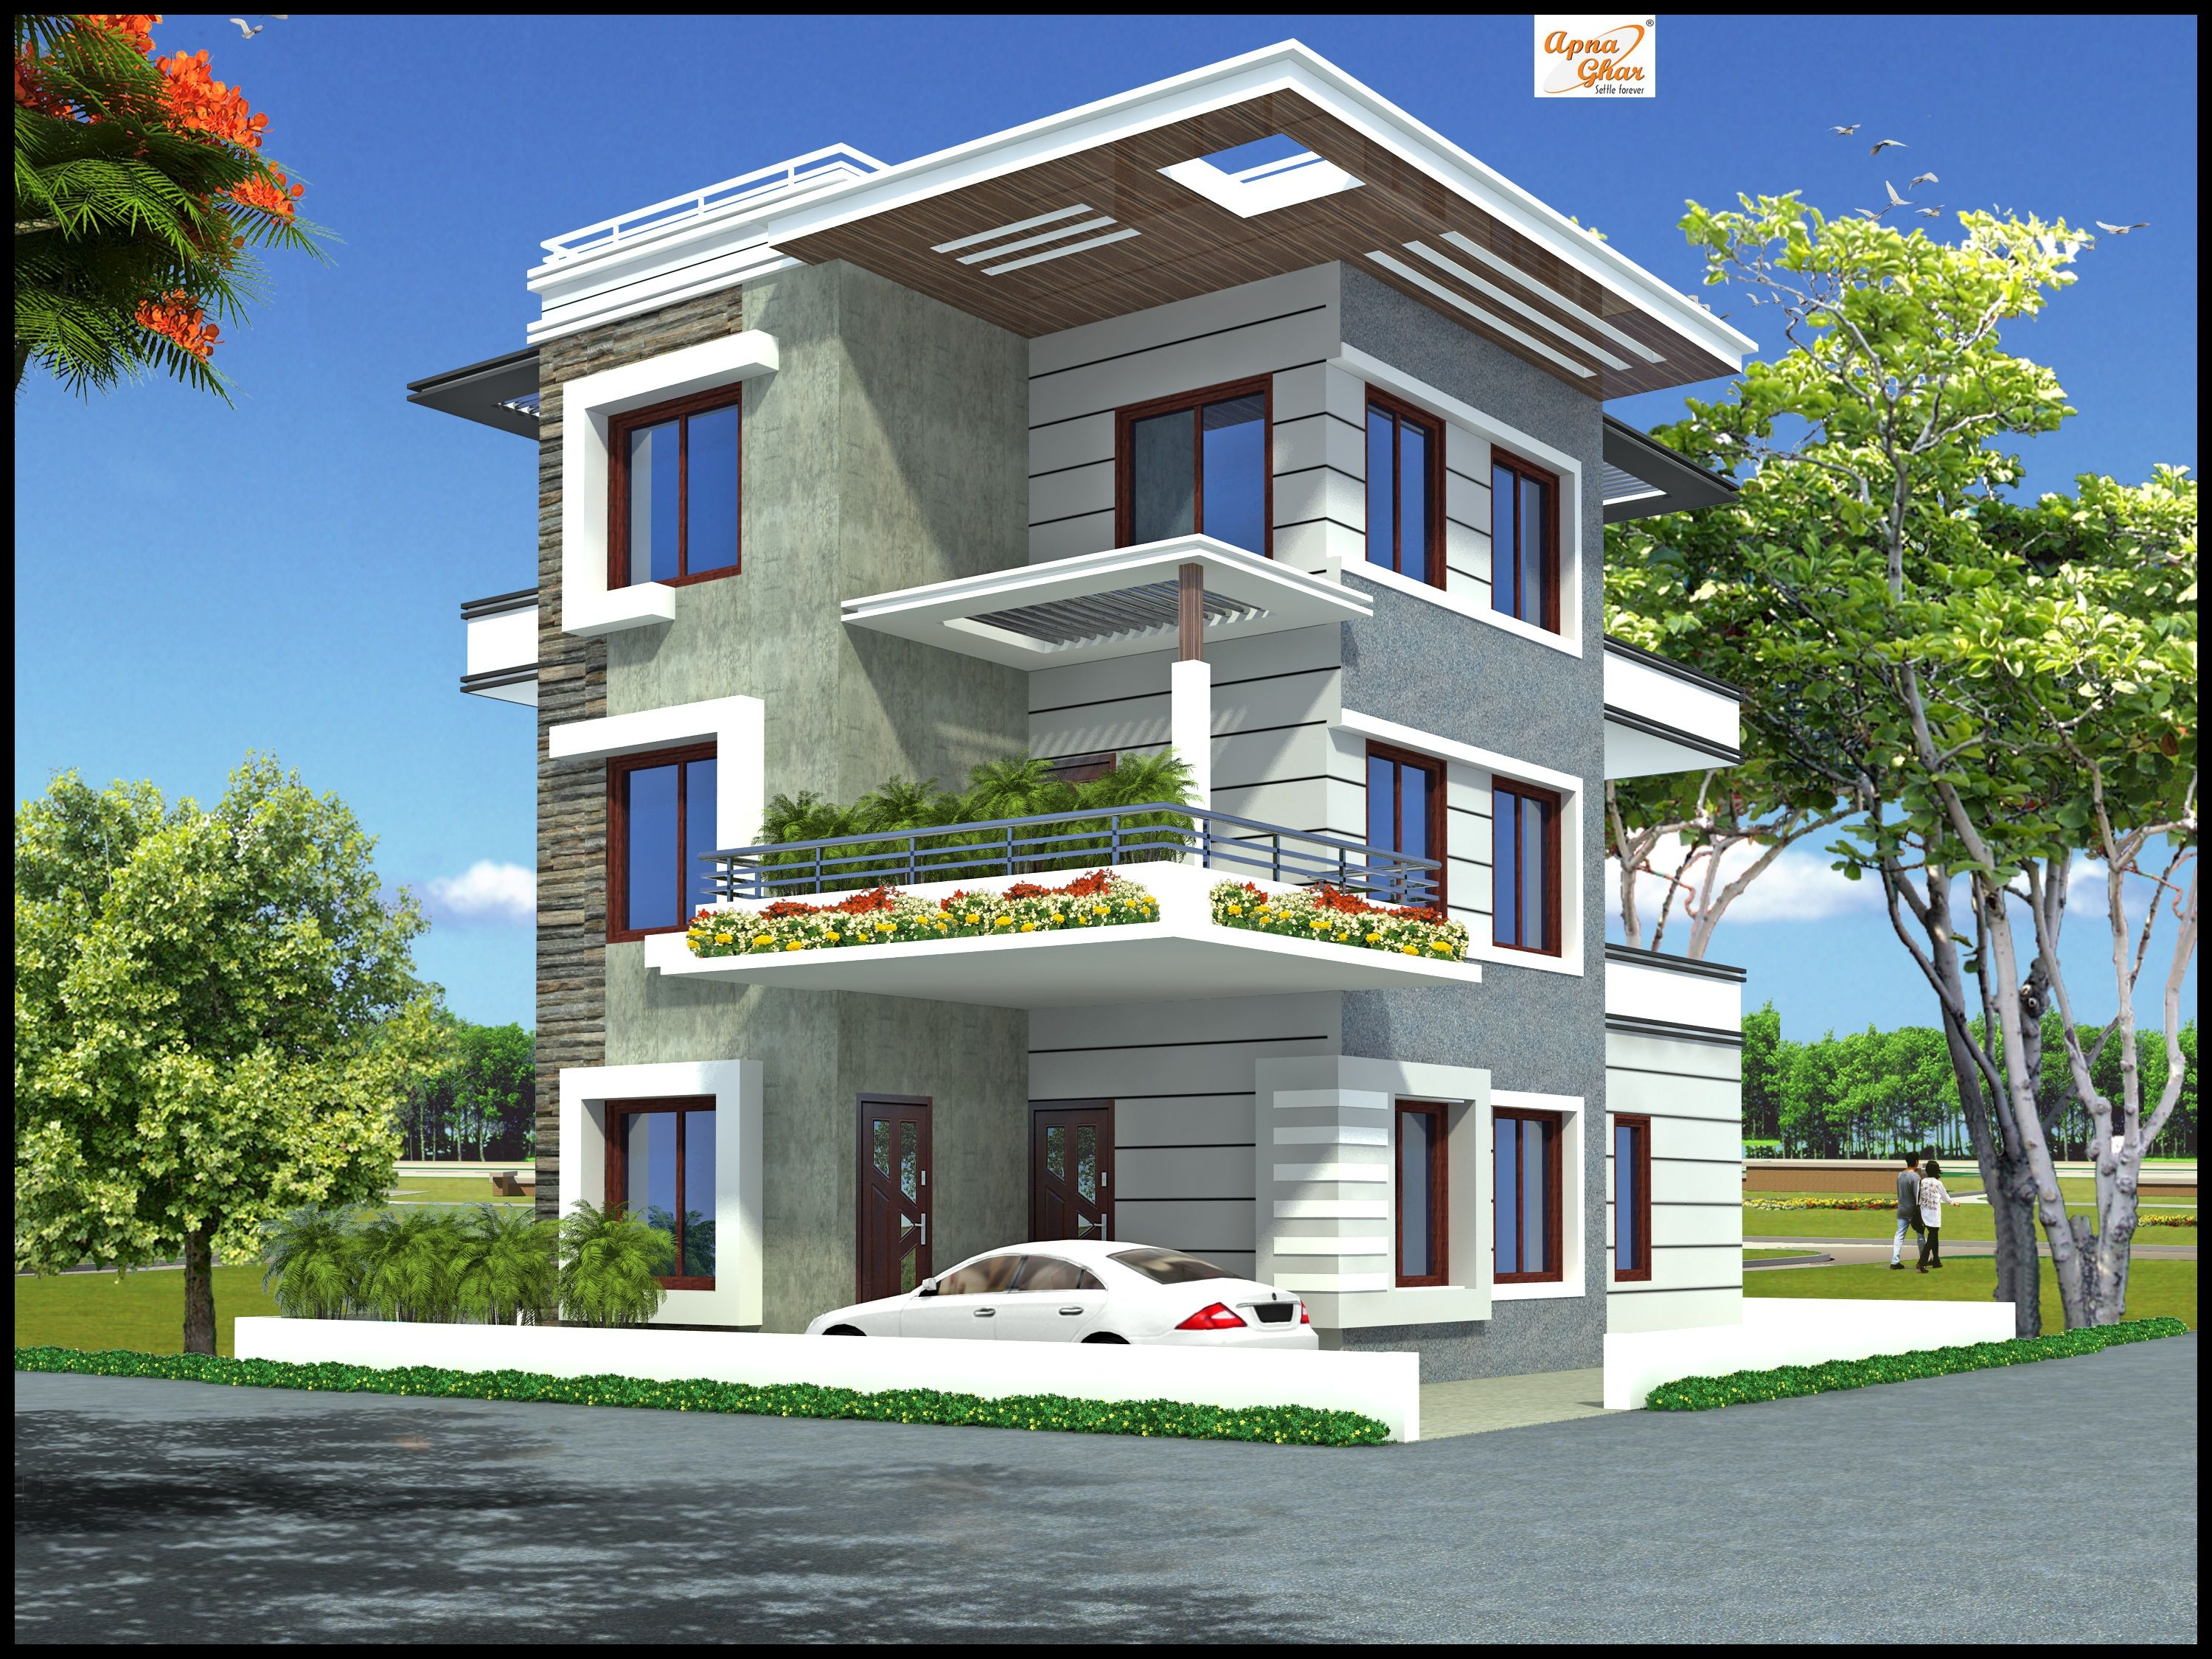 5 bedroom modern 3 floor house design area 192 sq mts 12m x 16m click on this link http Make home design